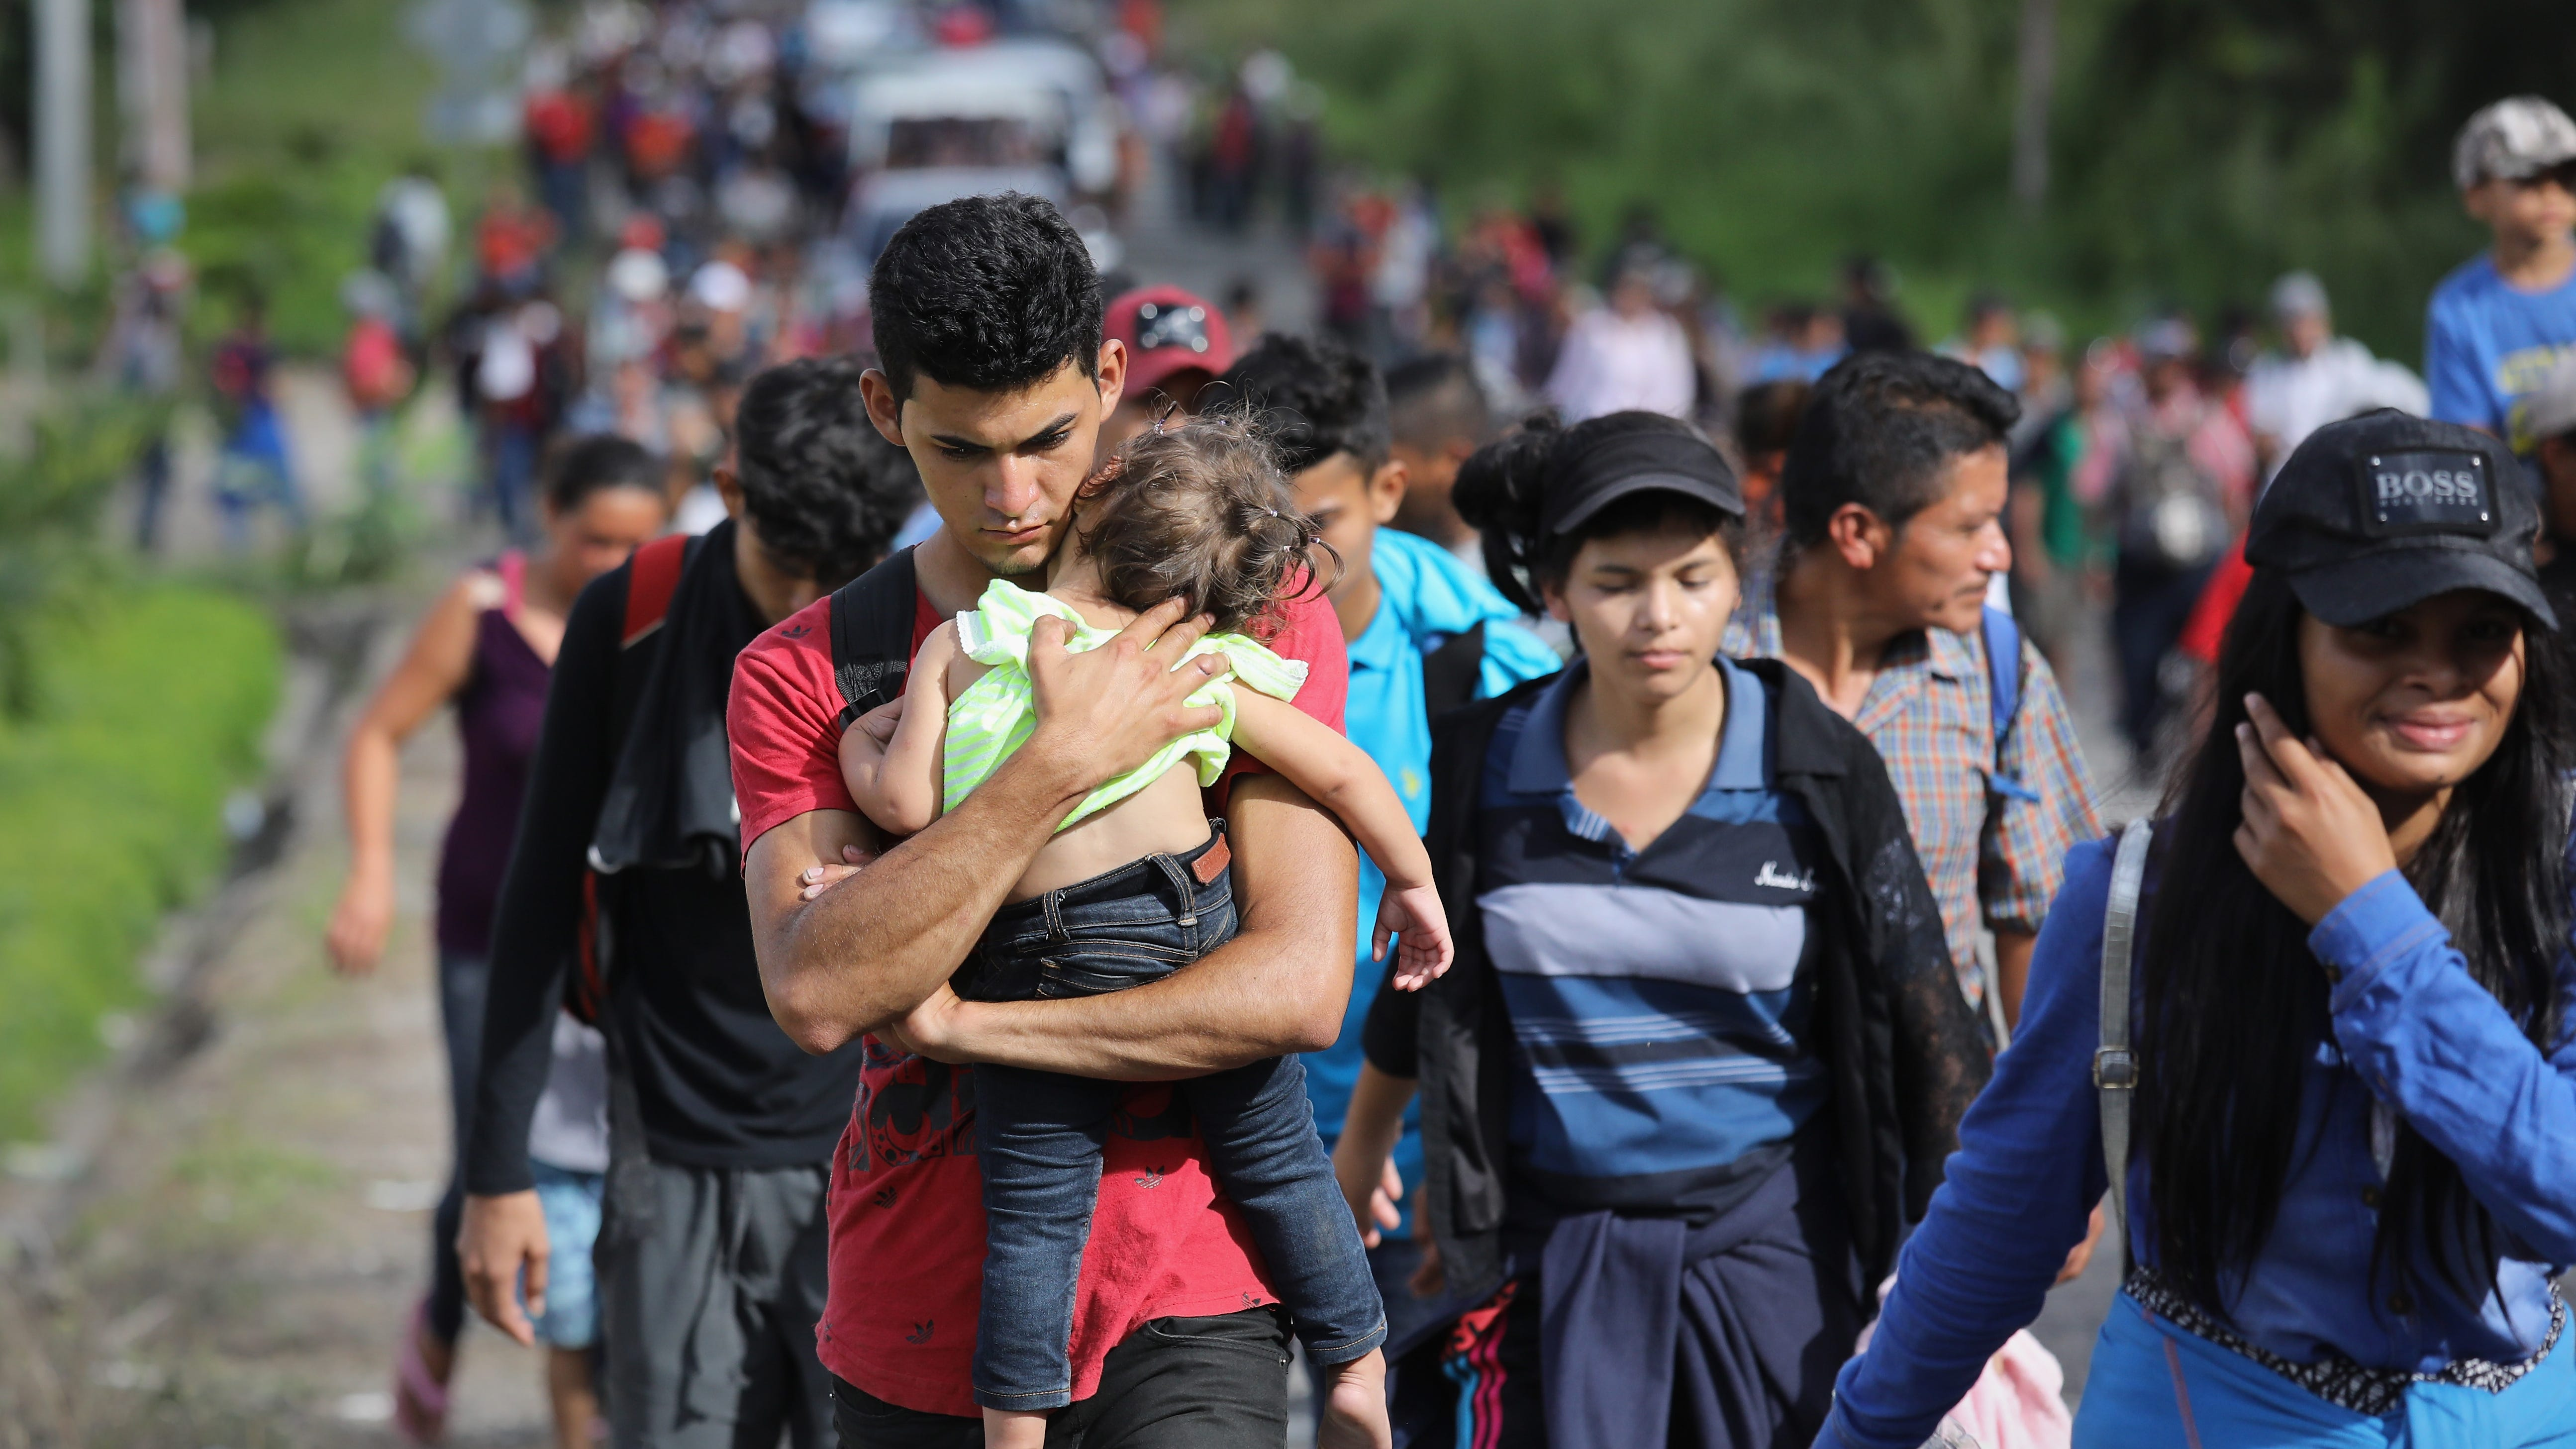 A caravan of more than 1,500 Honduran migrants moves north after crossing the border from Honduras into Guatemala on Oct. 15, 2018 in Esquipulas, Guatemala.